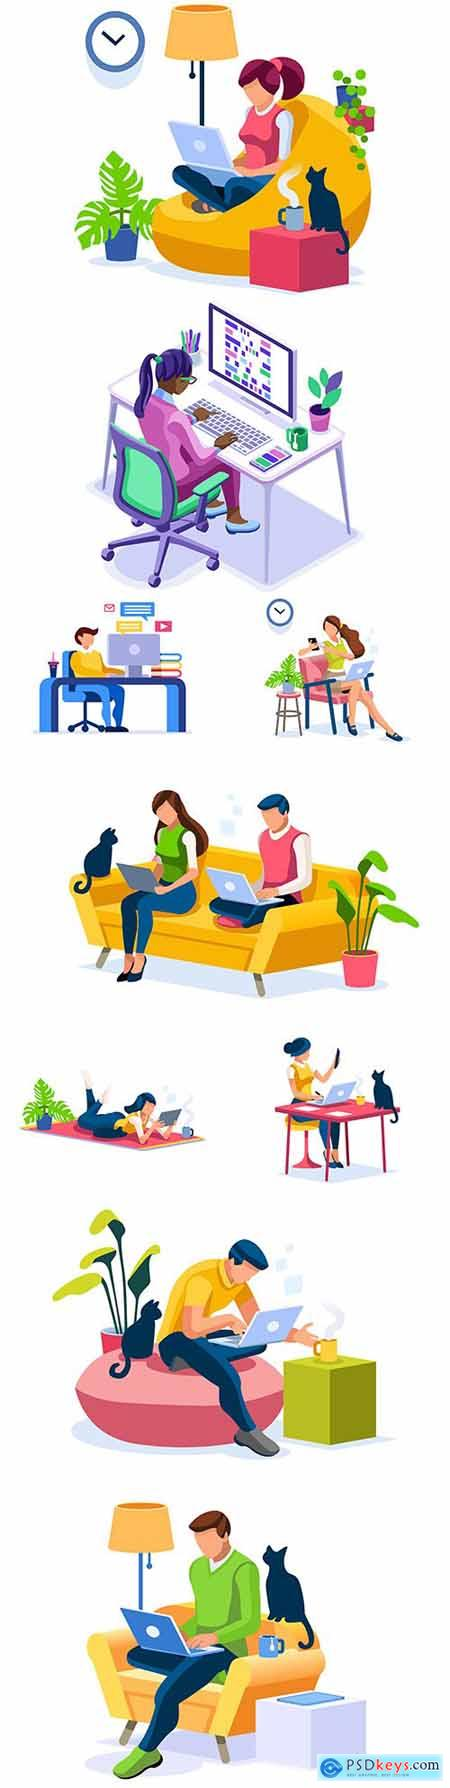 Stay at home people work at home design isometric illustrations